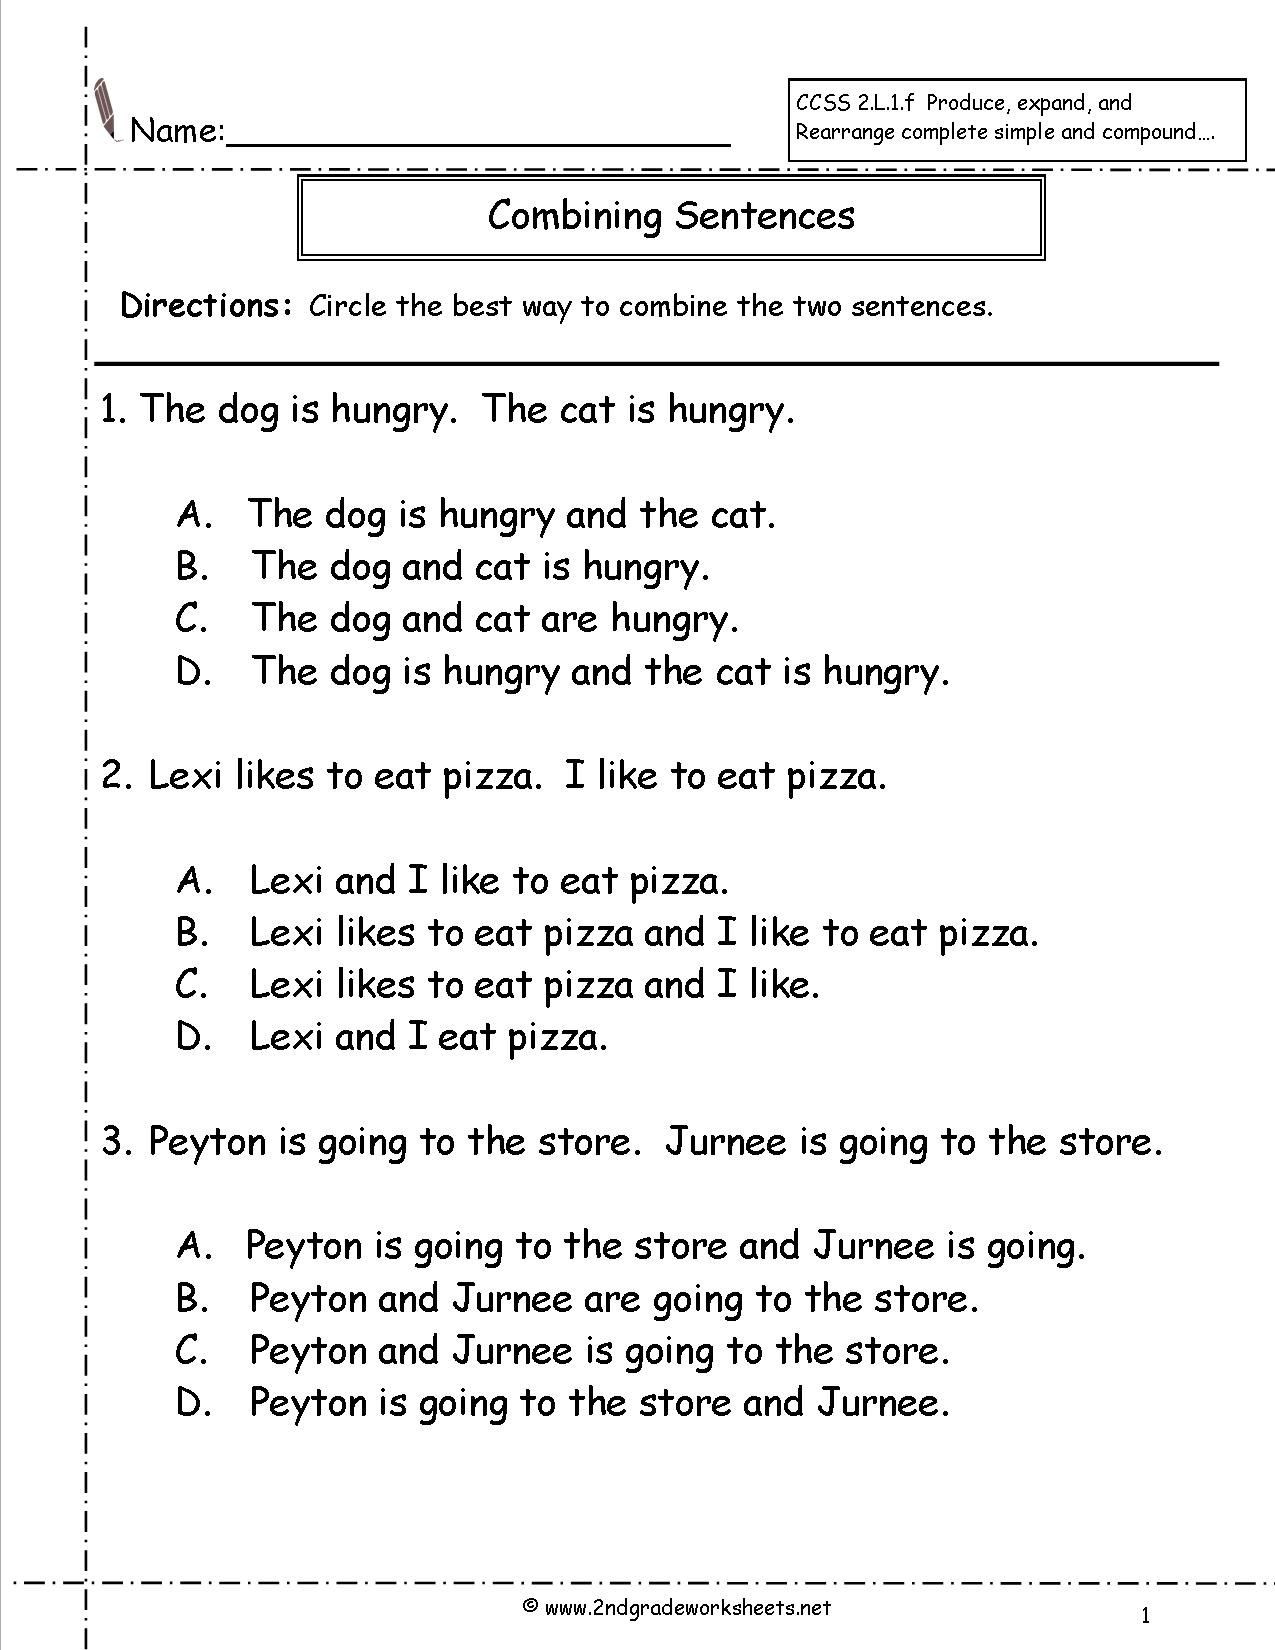 Personification Worksheets 6th Grade Bining Sentences Worksheet